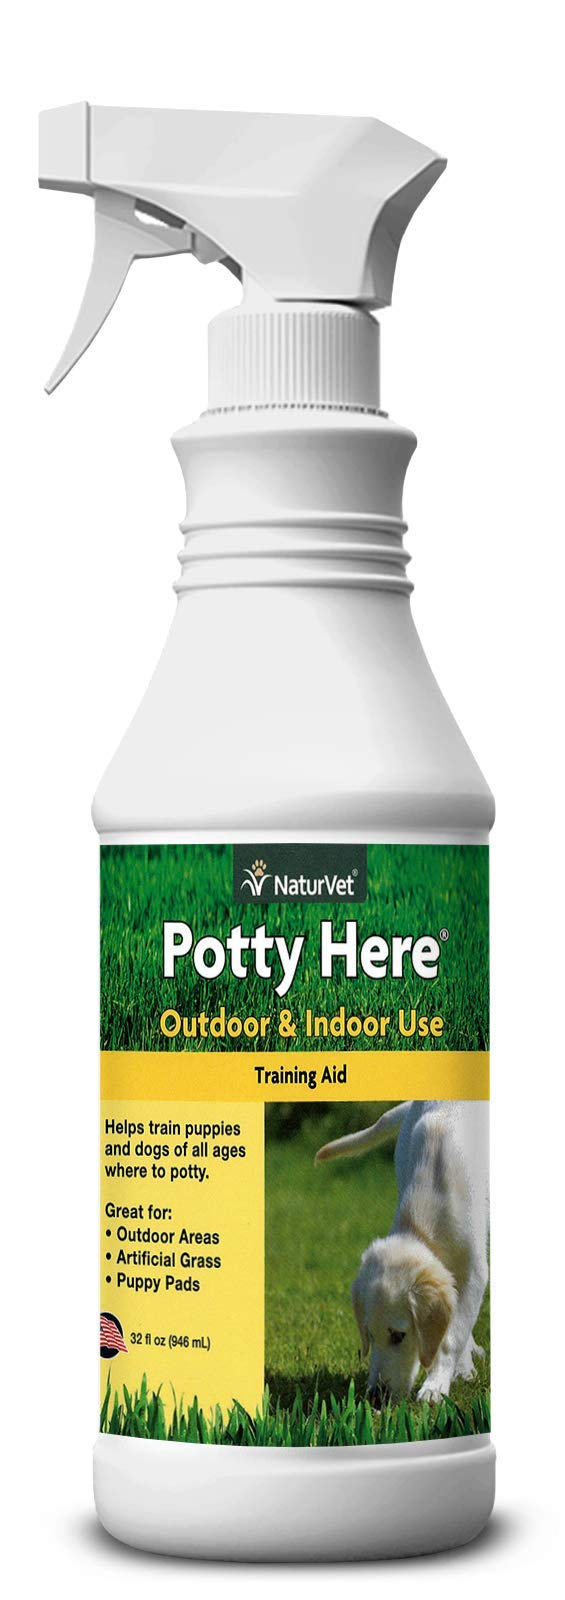 NaturVet - Potty Here Training Aid Spray - Attractive Scent Helps Train Puppies & Dogs Where to Potty - Formulated for Indoor & Outdoor Use - 32 oz by NaturVet